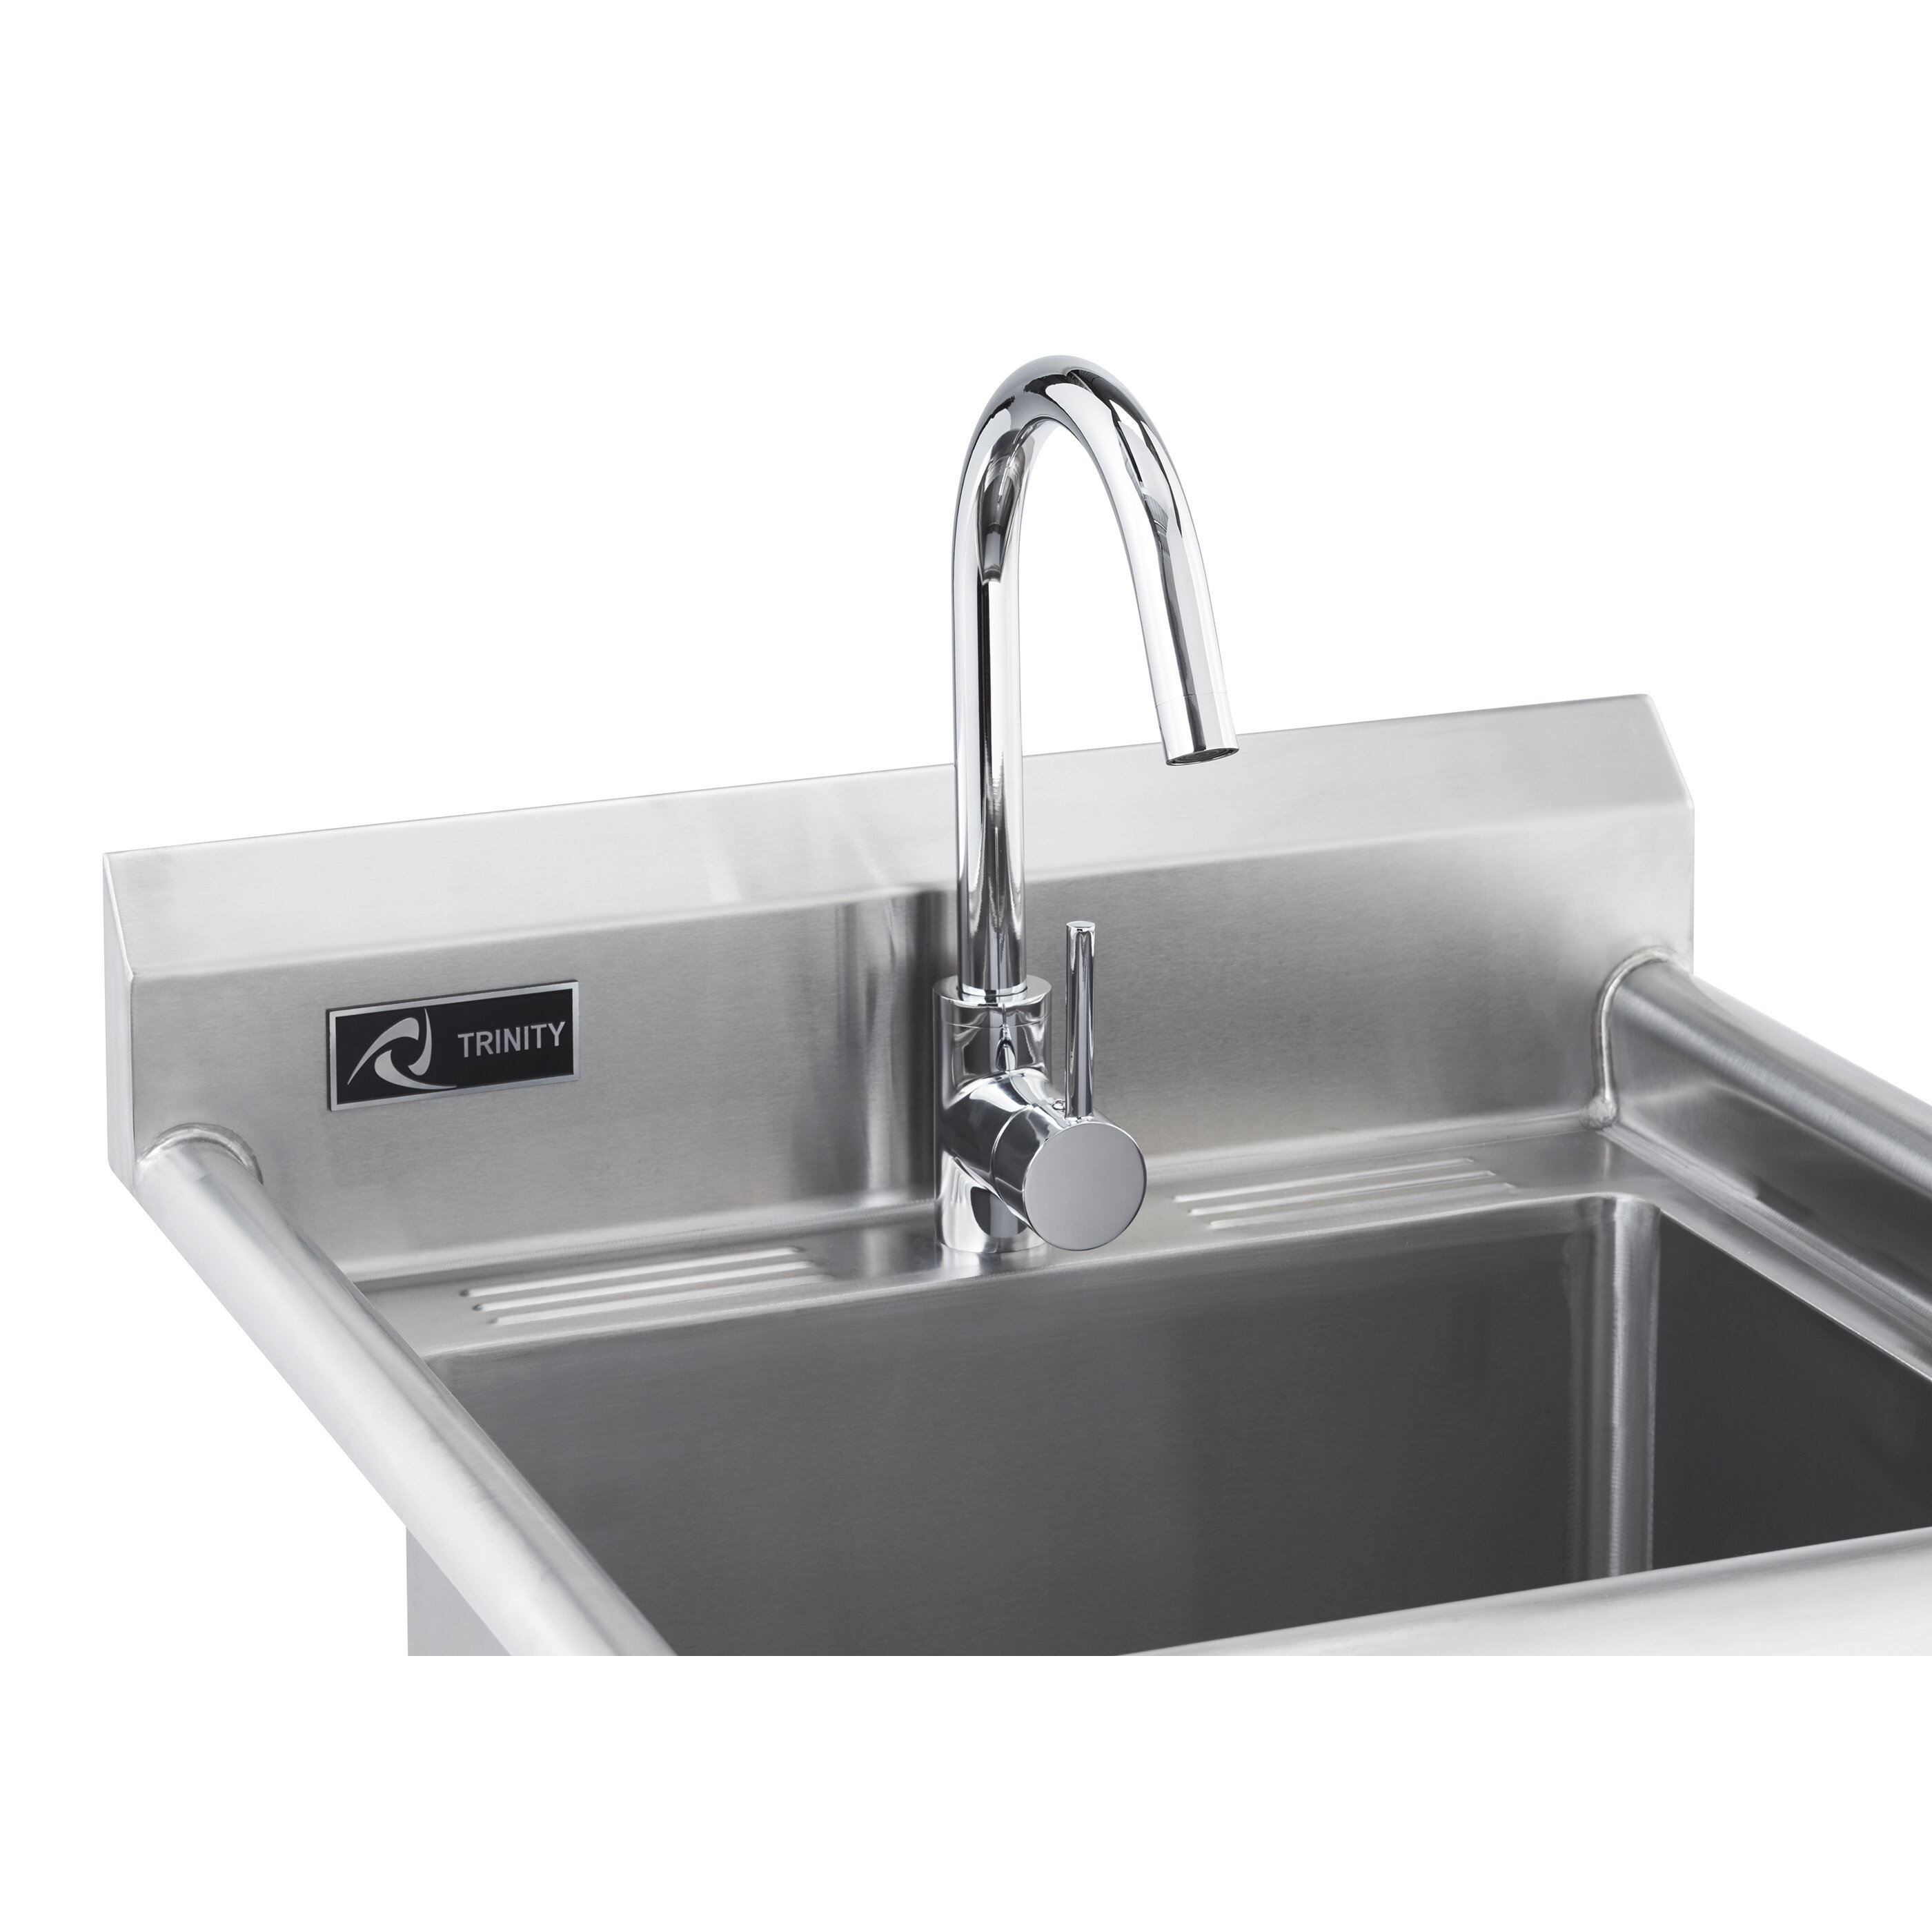 Stainless Steel Sink Cost : Trinity 23